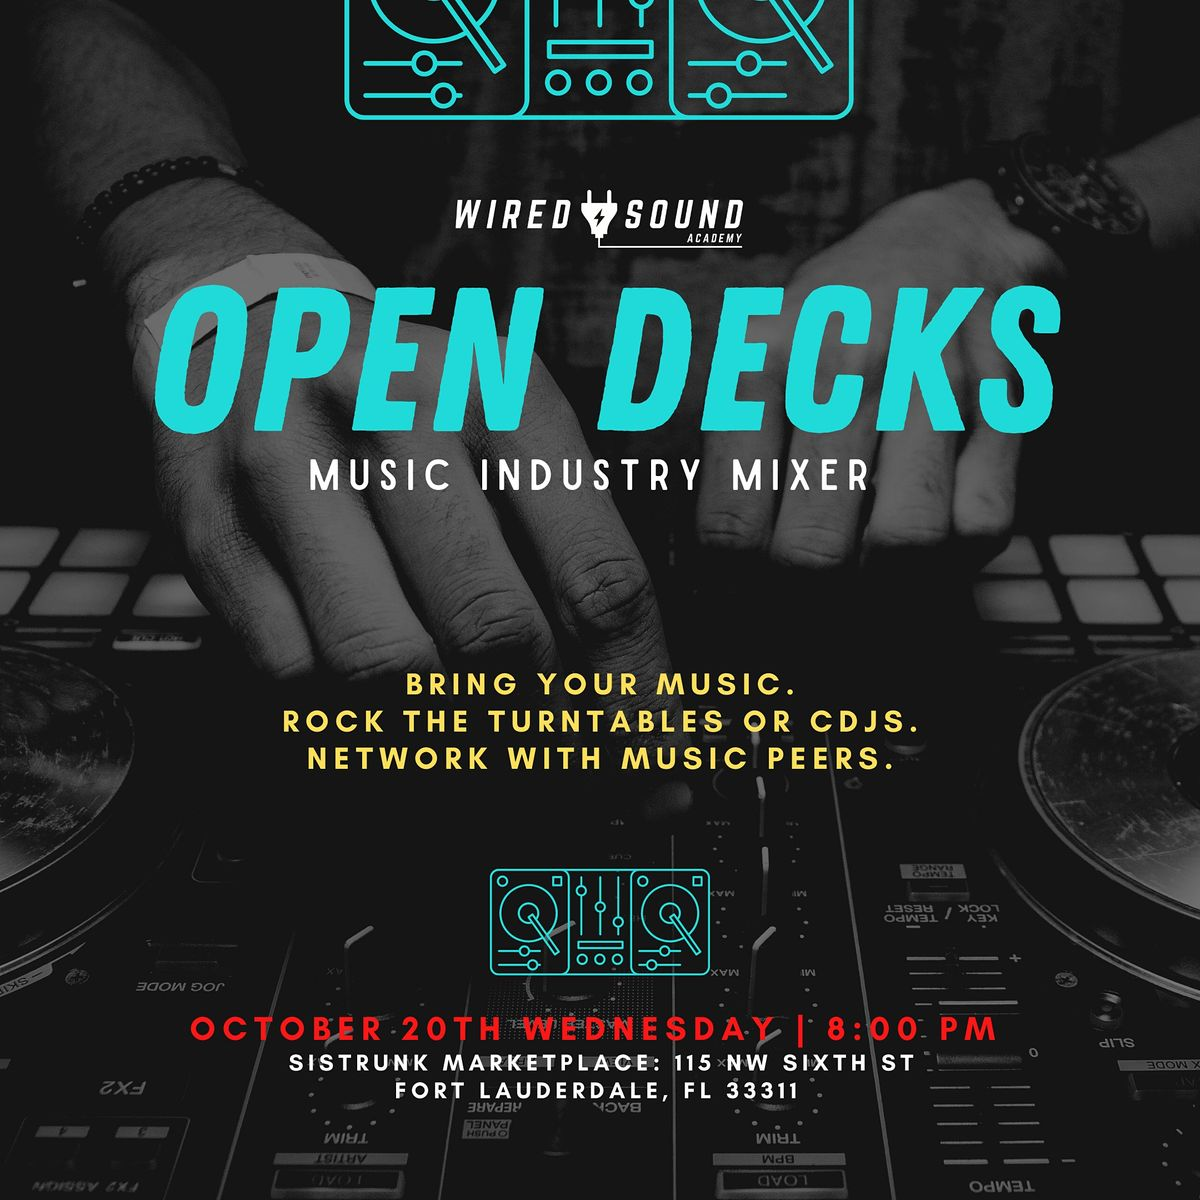 Wired Sound Academy Presents: Open Decks, 20 October   Event in Fort Lauderdale   AllEvents.in